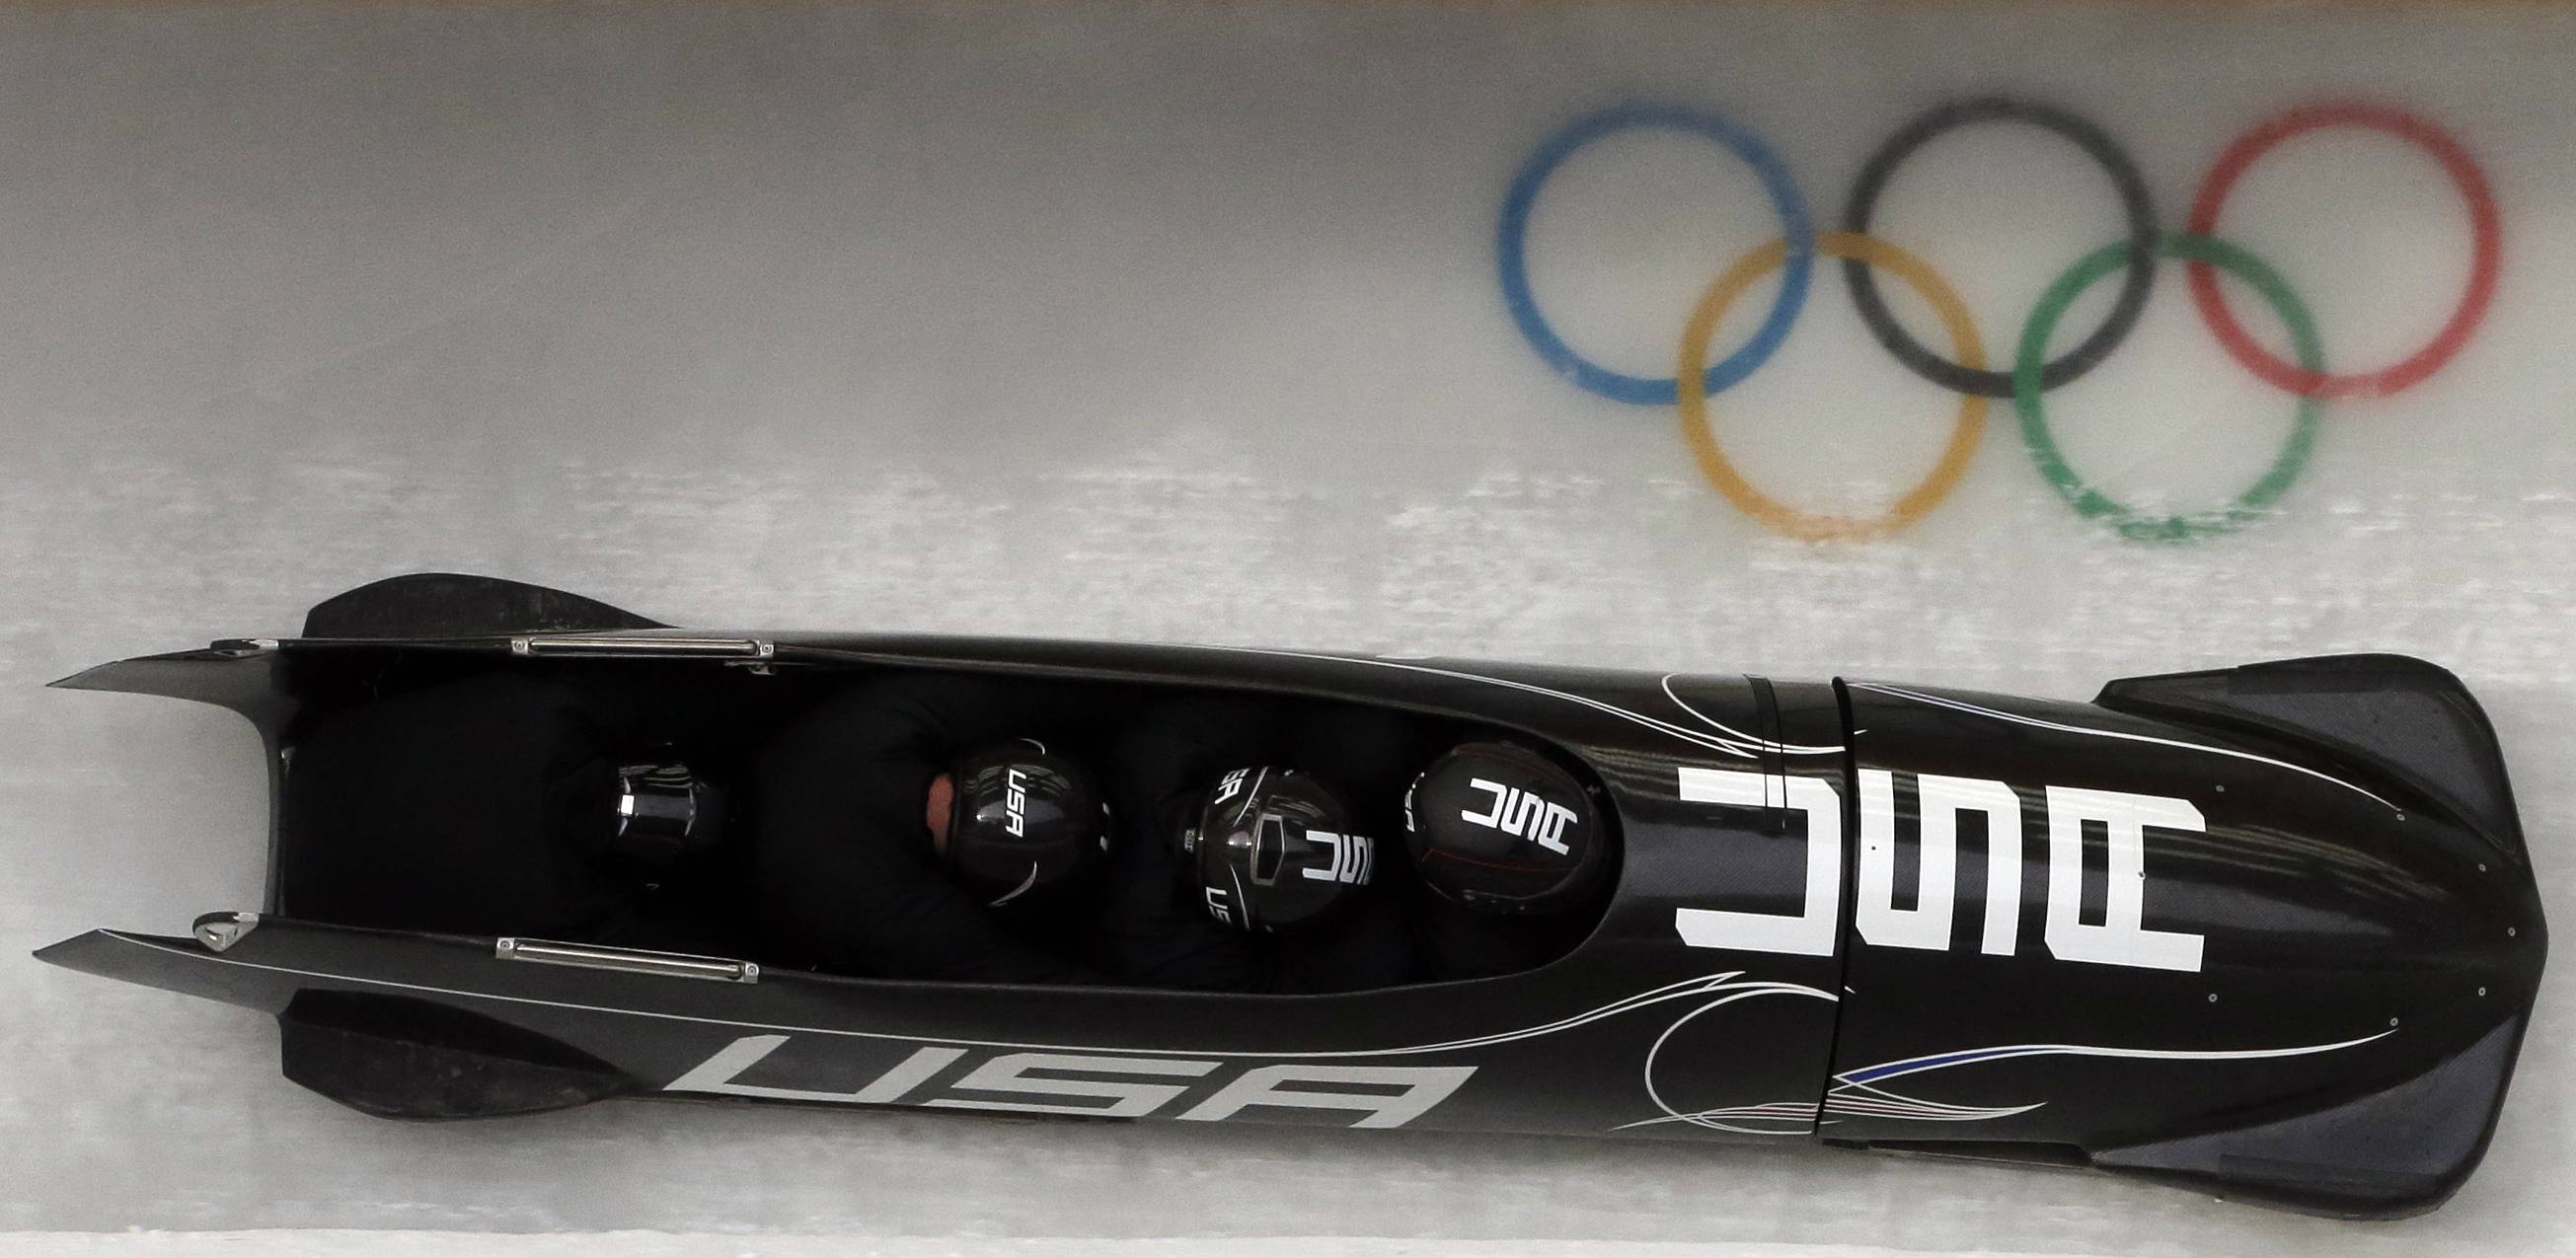 The team from the United States USA-1, piloted by Steven Holcomb, take a curve Thursday during the men's four-man bobsled training at the 2014 Winter Olympics in Krasnaya Polyana, Russia.